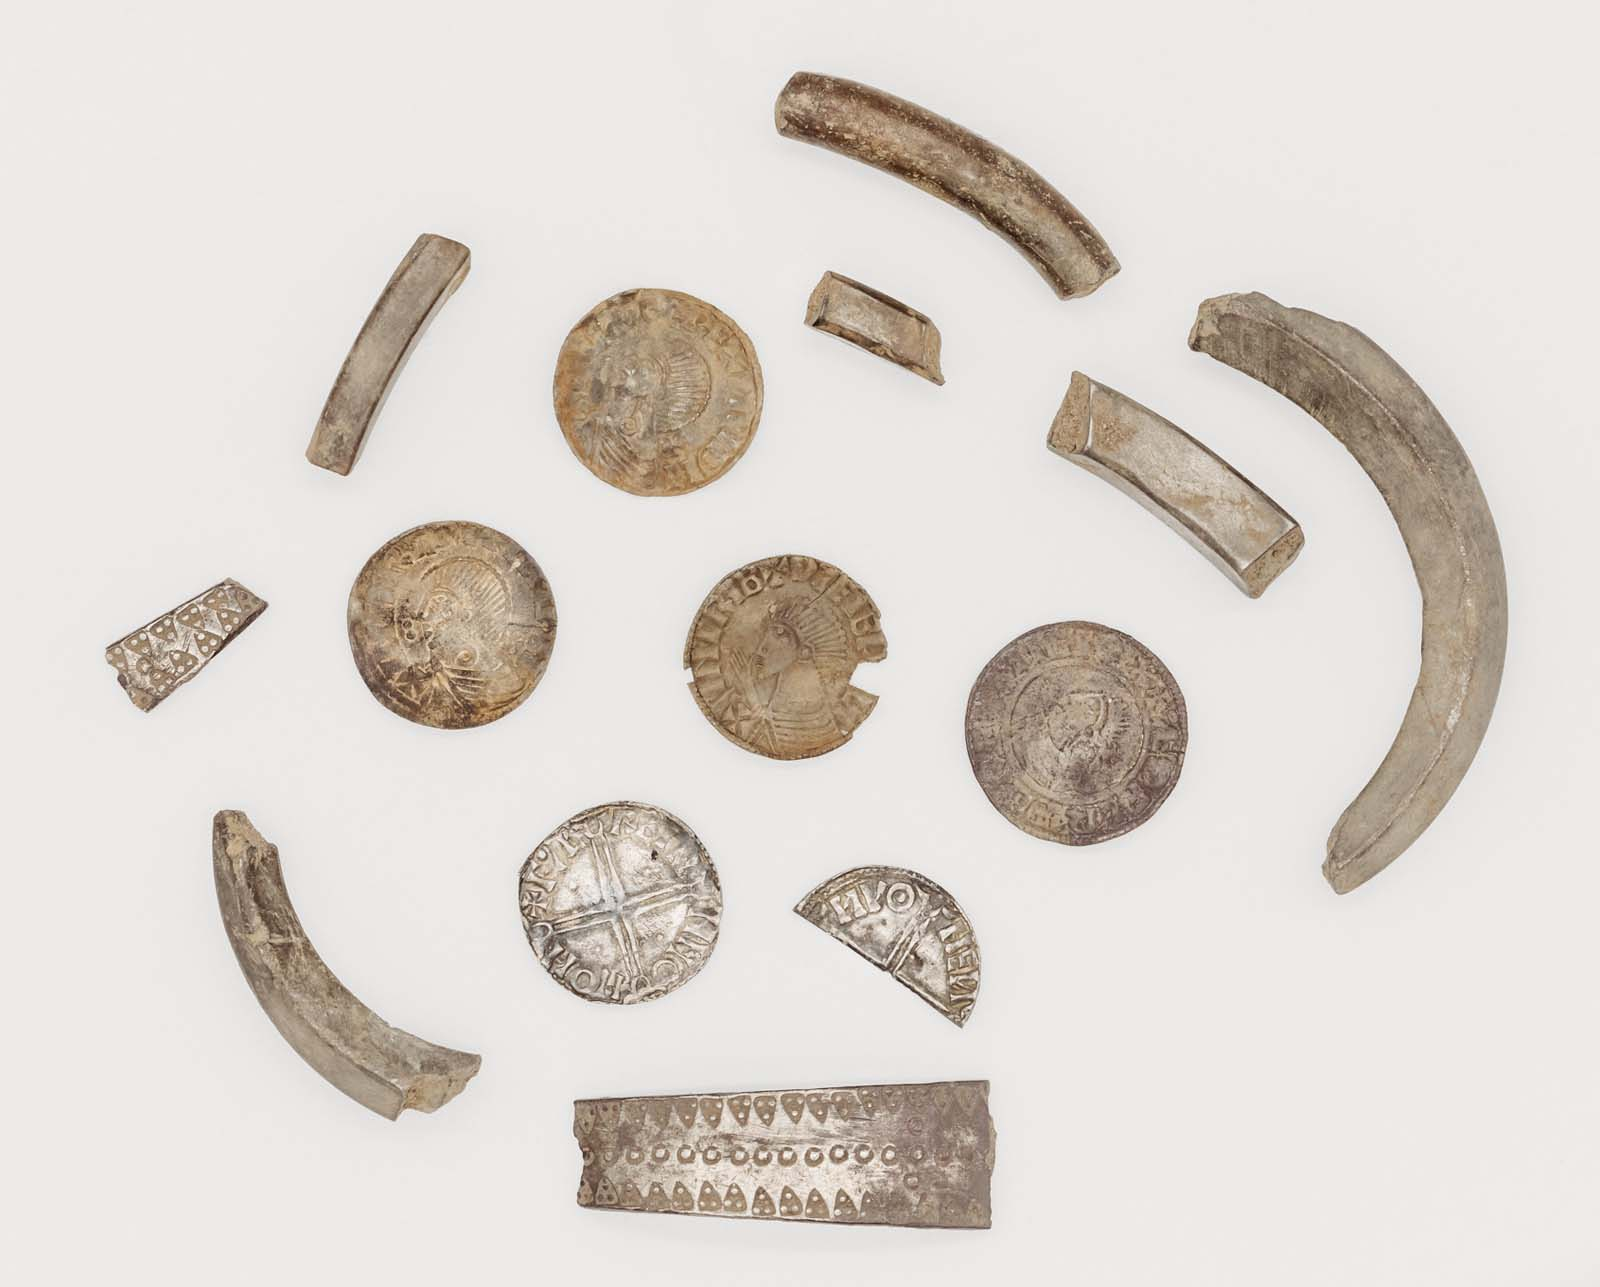 a range of metals and coins